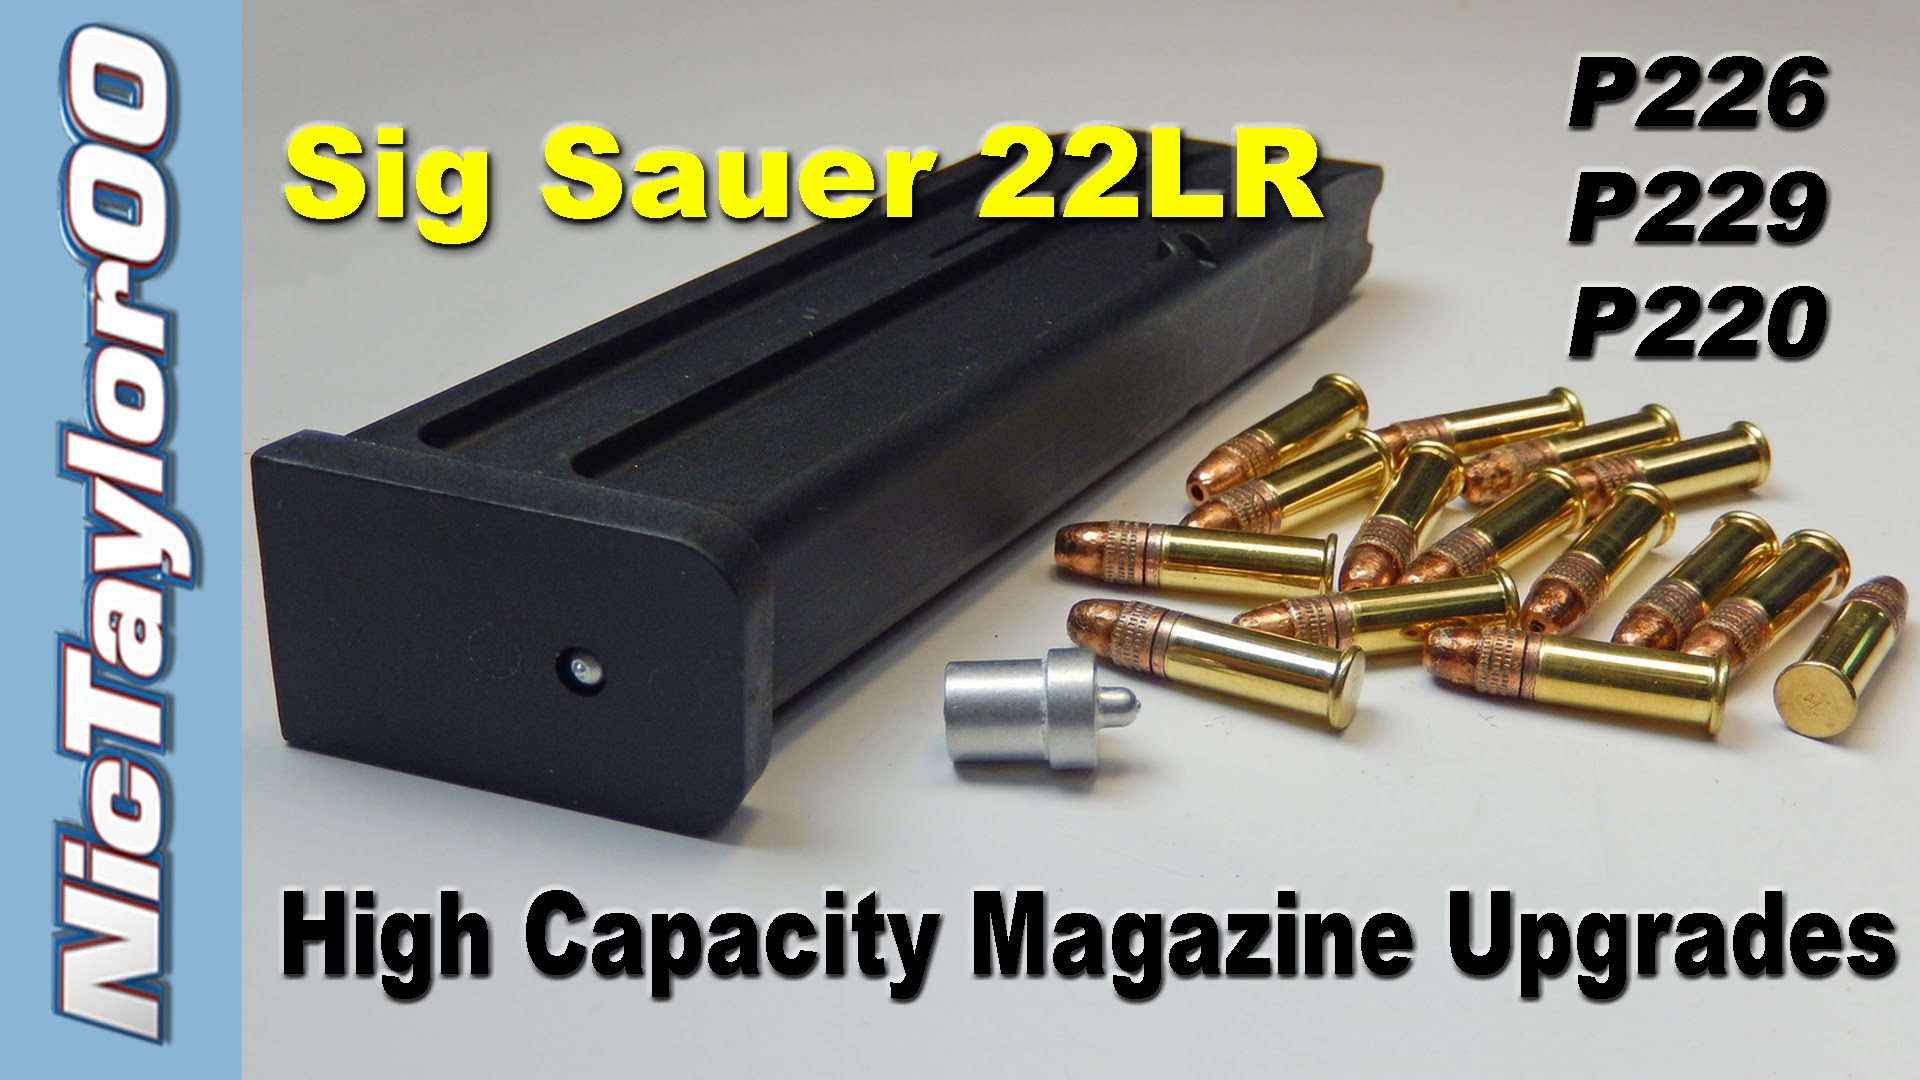 Sig Sauer Hi Capacity Magazine Upgrade Install Instructions